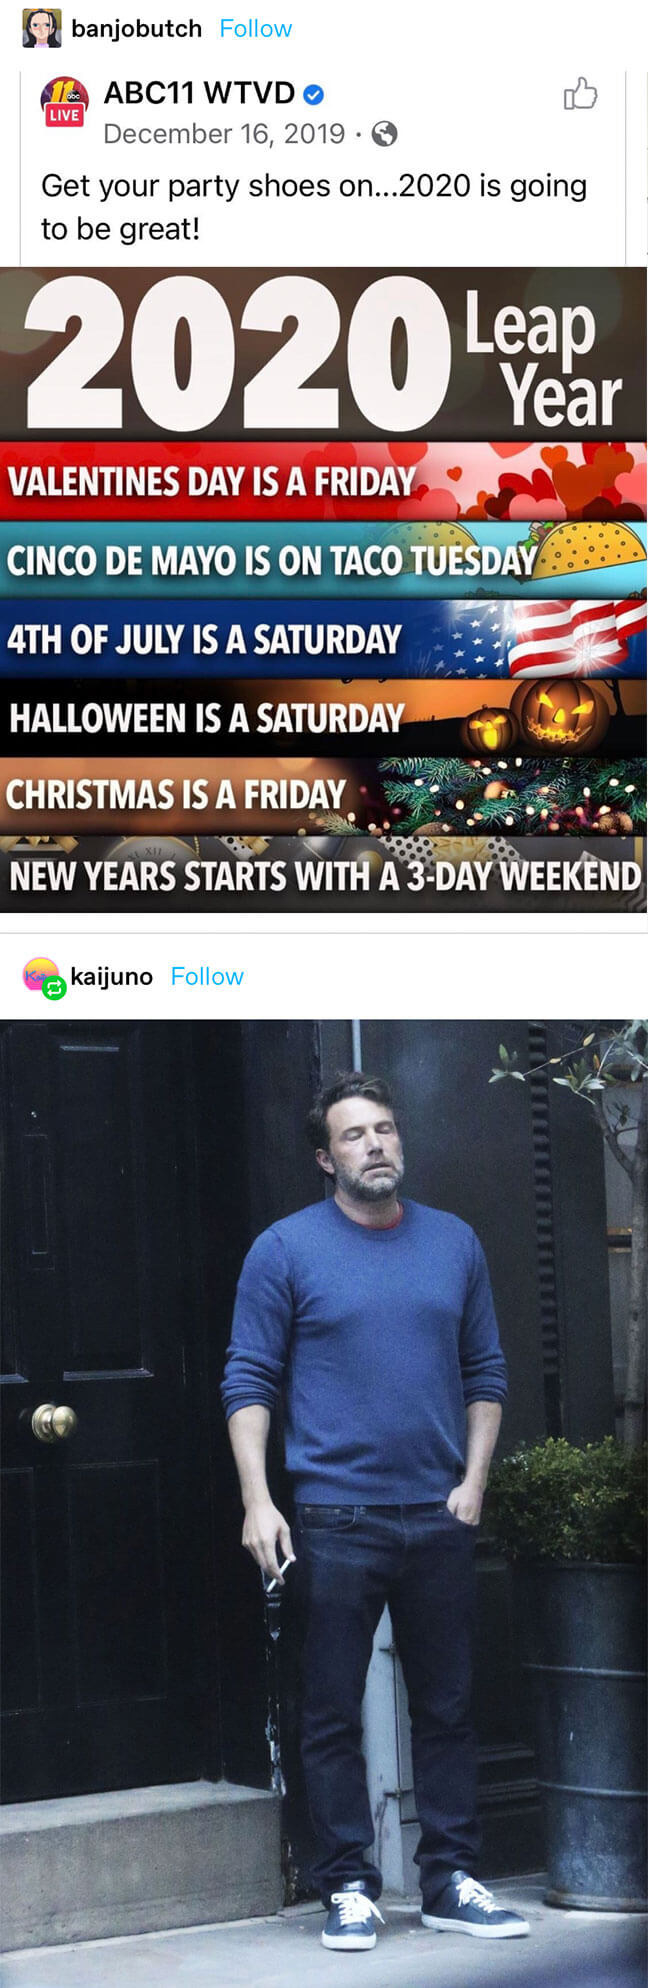 someone reposts a facebook post about how all the holidays in 2020 are on weekends/the perfect days and 2020 is going to be great, adding the meme of Ben Affleck smoking upset